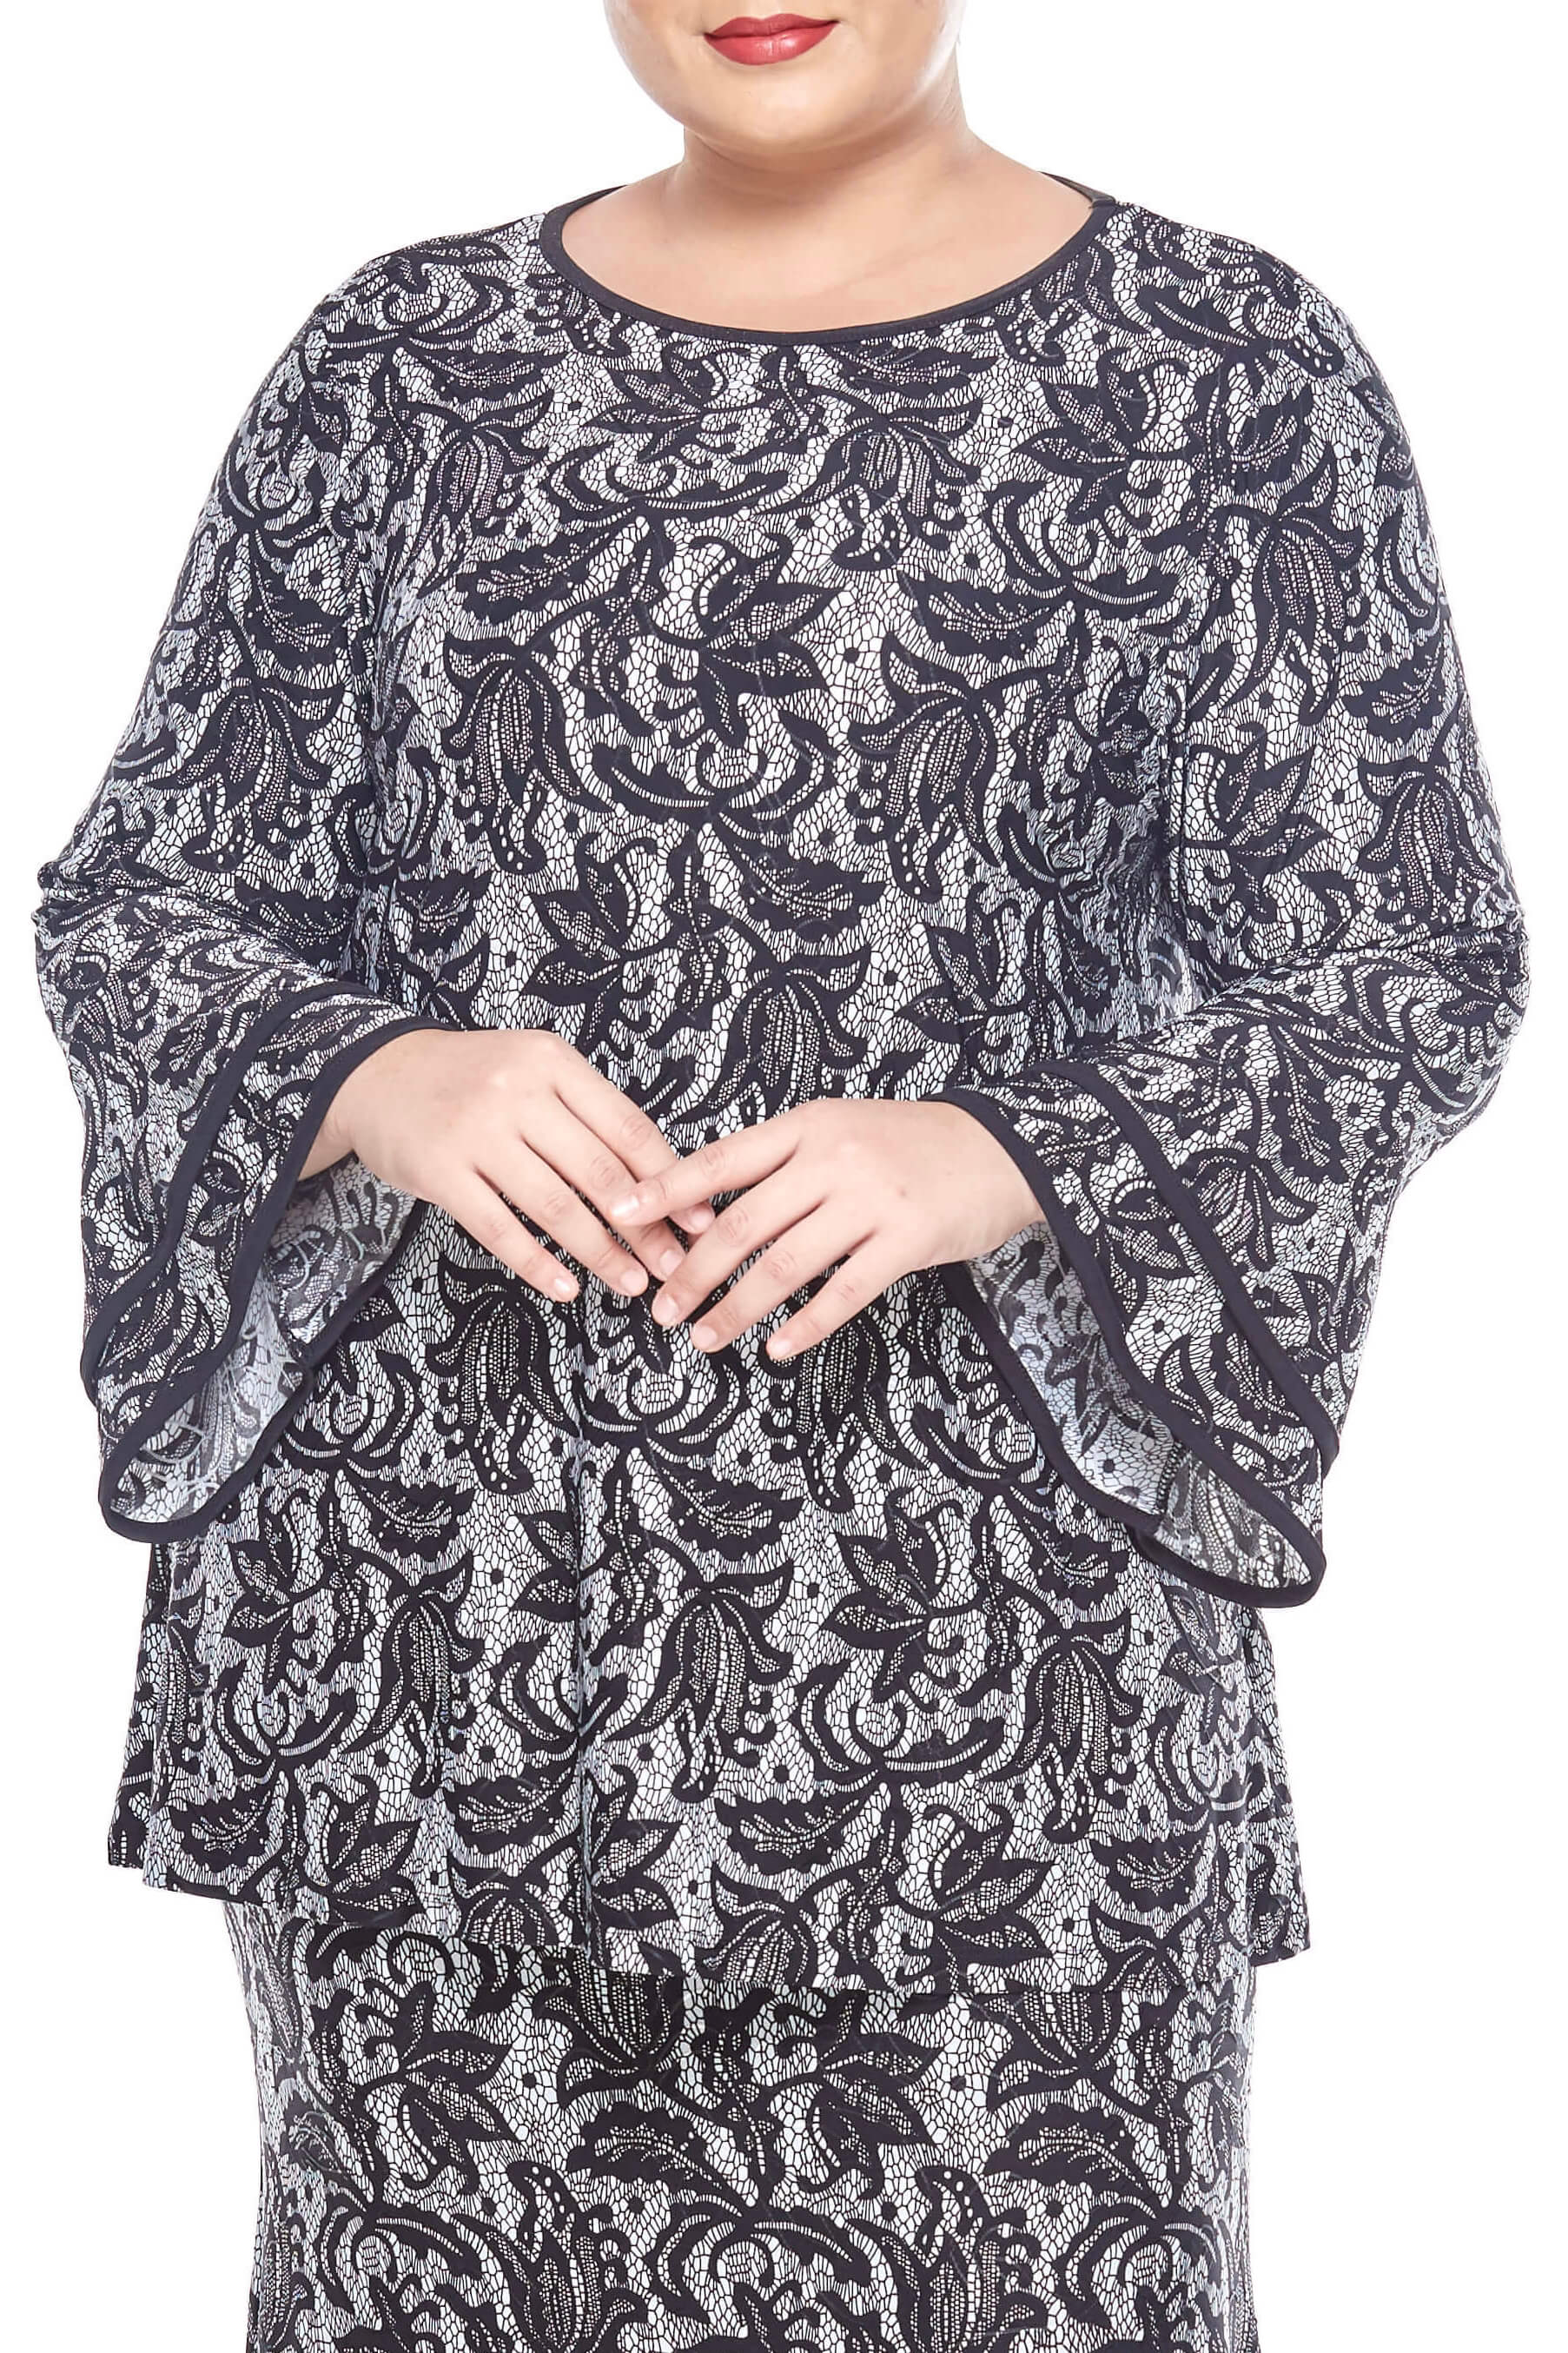 Black Printed Round Neck Blouse With Layers Sleeve 4